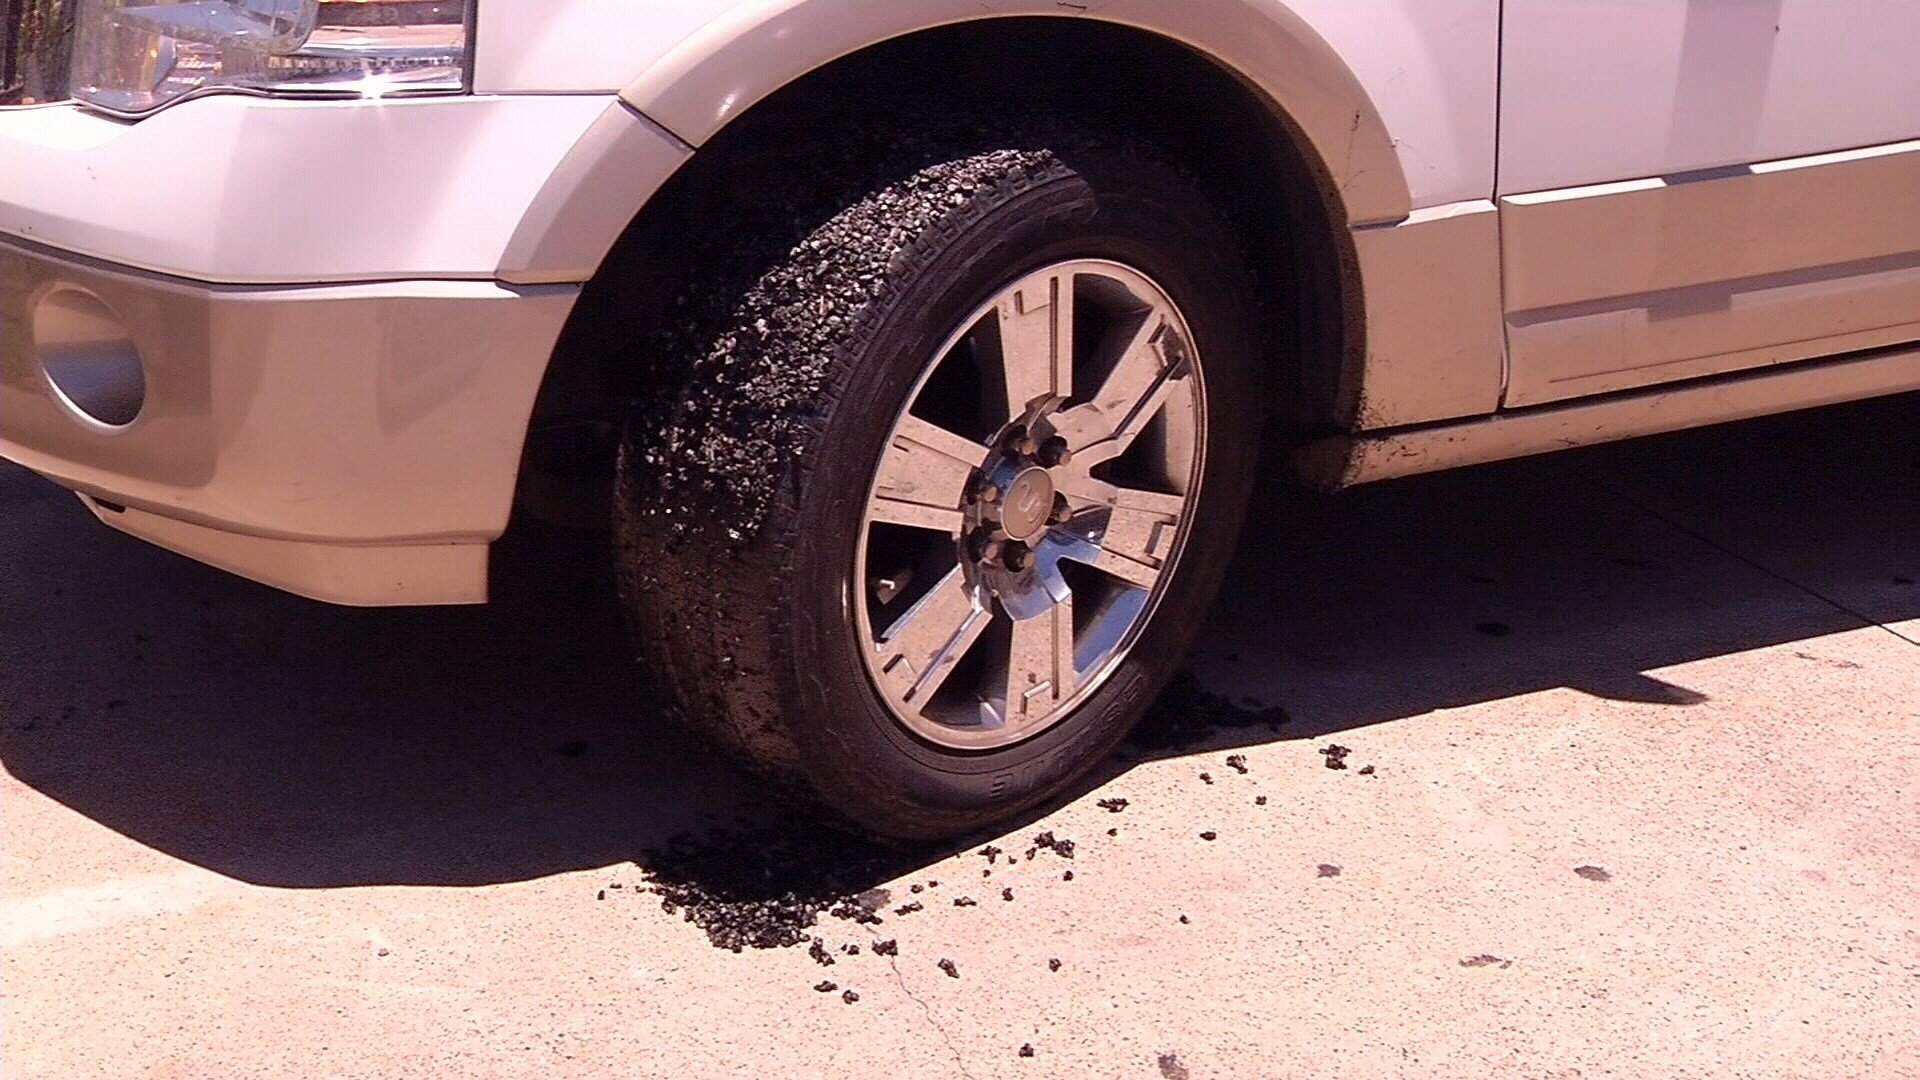 Drivers say tar flew onto their cars and clogged their wheels when they were driving through a street repair project.